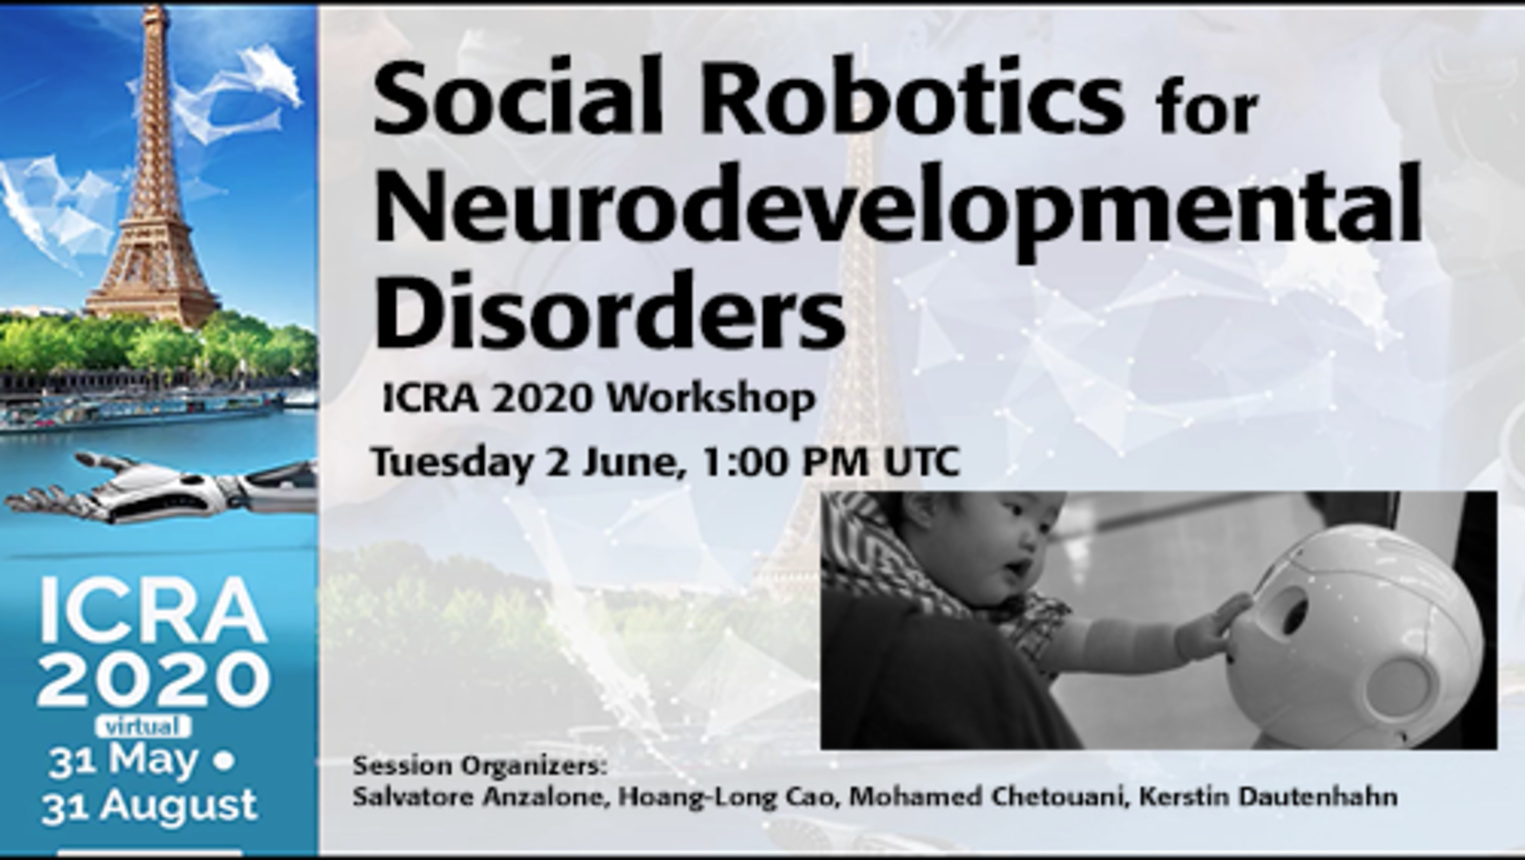 Social Robotics for Neurodevelopmental Disorders - ICRA 2020